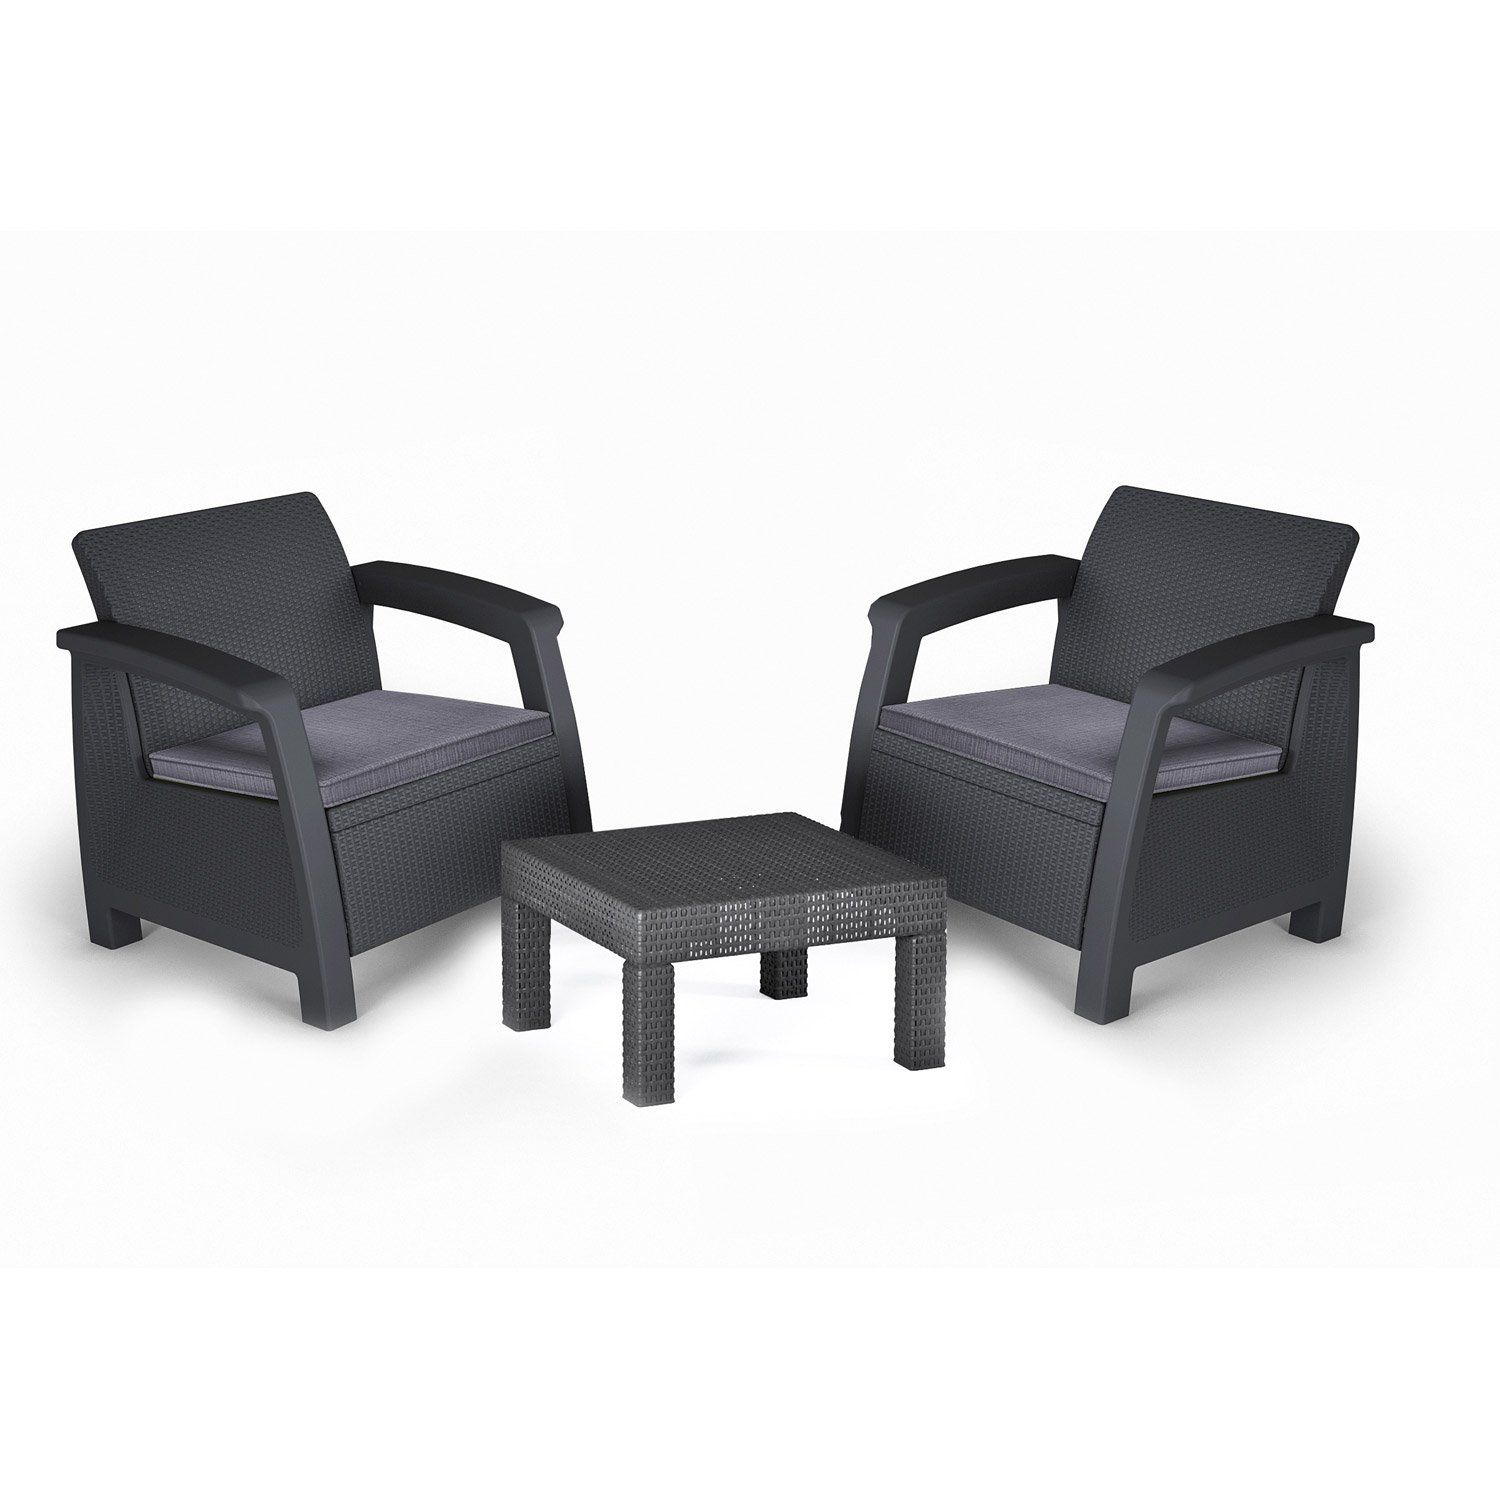 Etonnant Salon De Jardin 2 Personnes Pas Cher Lounge Furniture Furniture Garden Chairs